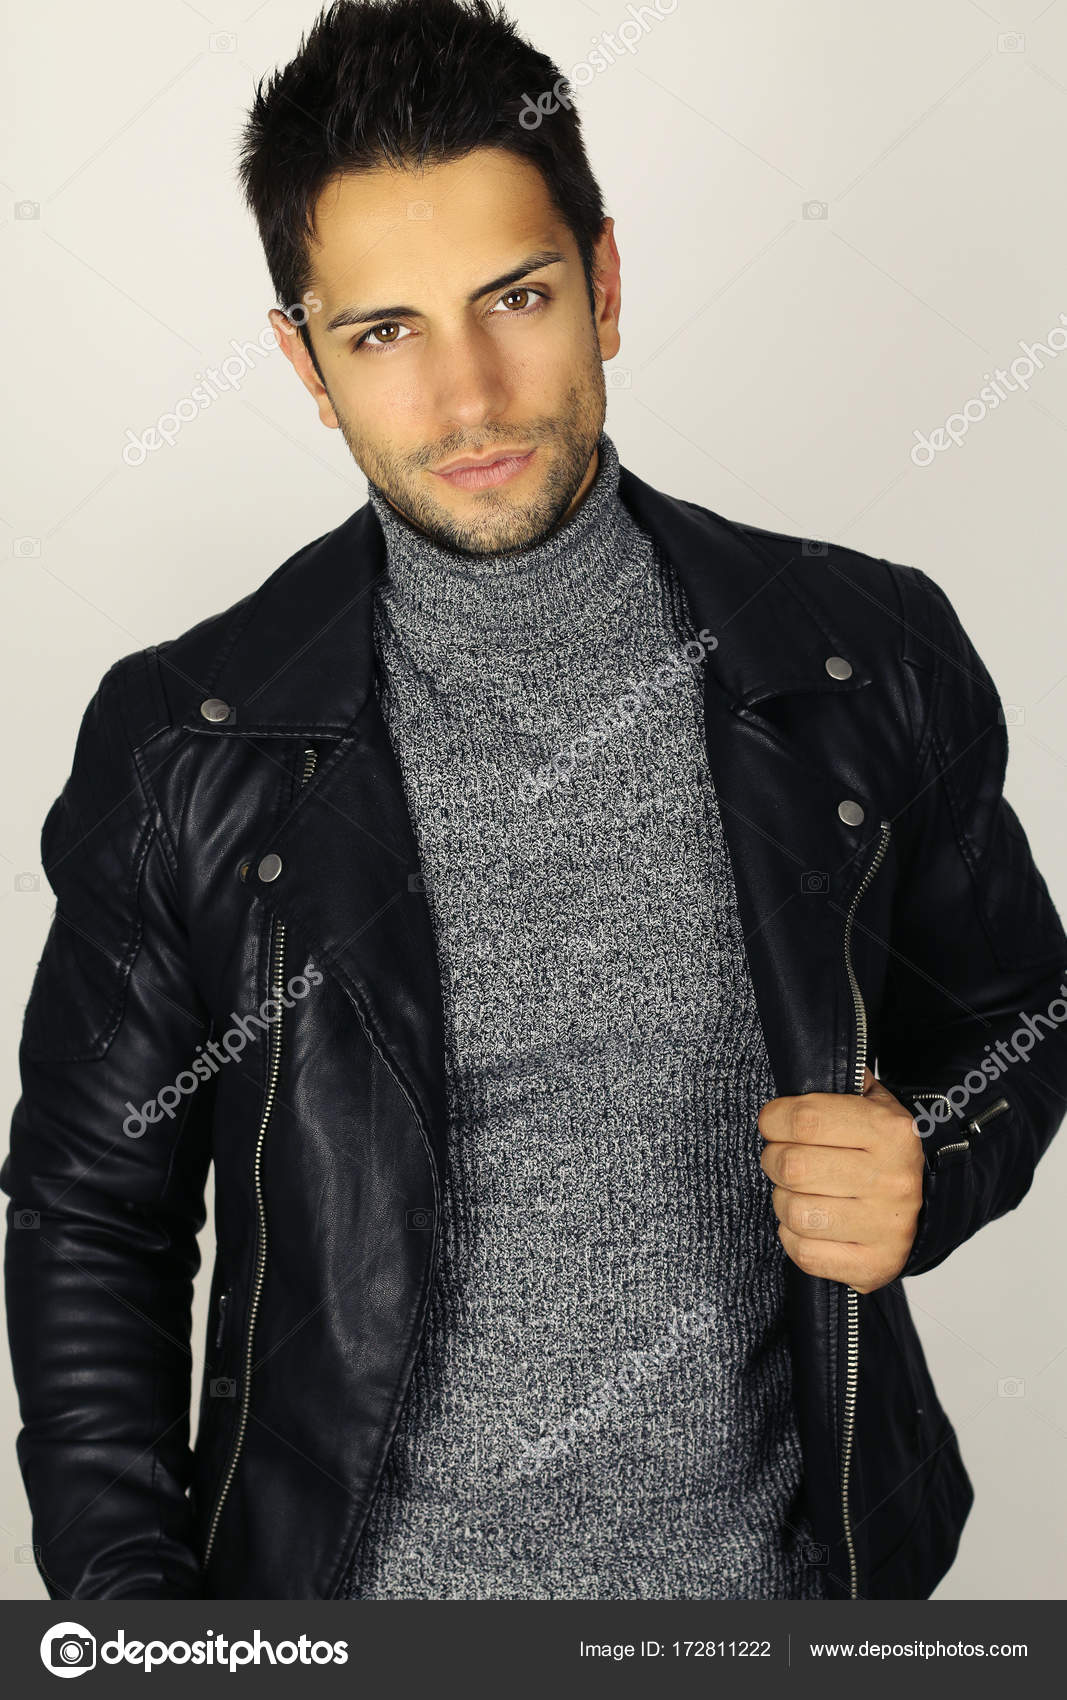 Gorgeous And Stylish Handsome Young Man Wearing A Leather Jacket